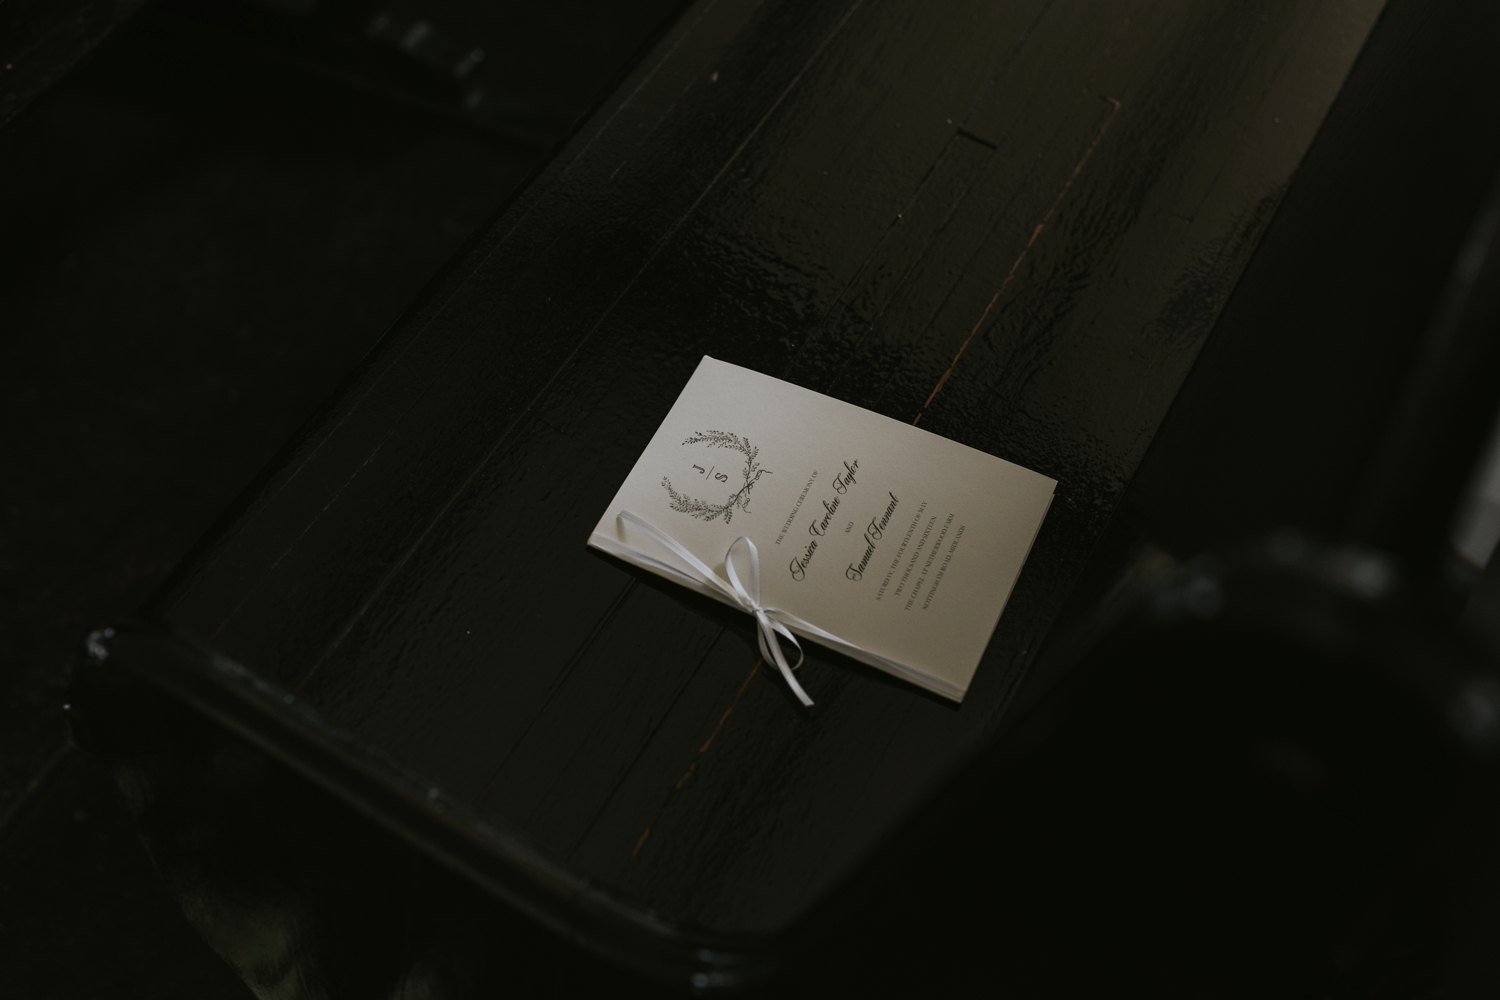 Wedding stationery inspiration with sketched wreath on chair at Vancouver wedding ceremony